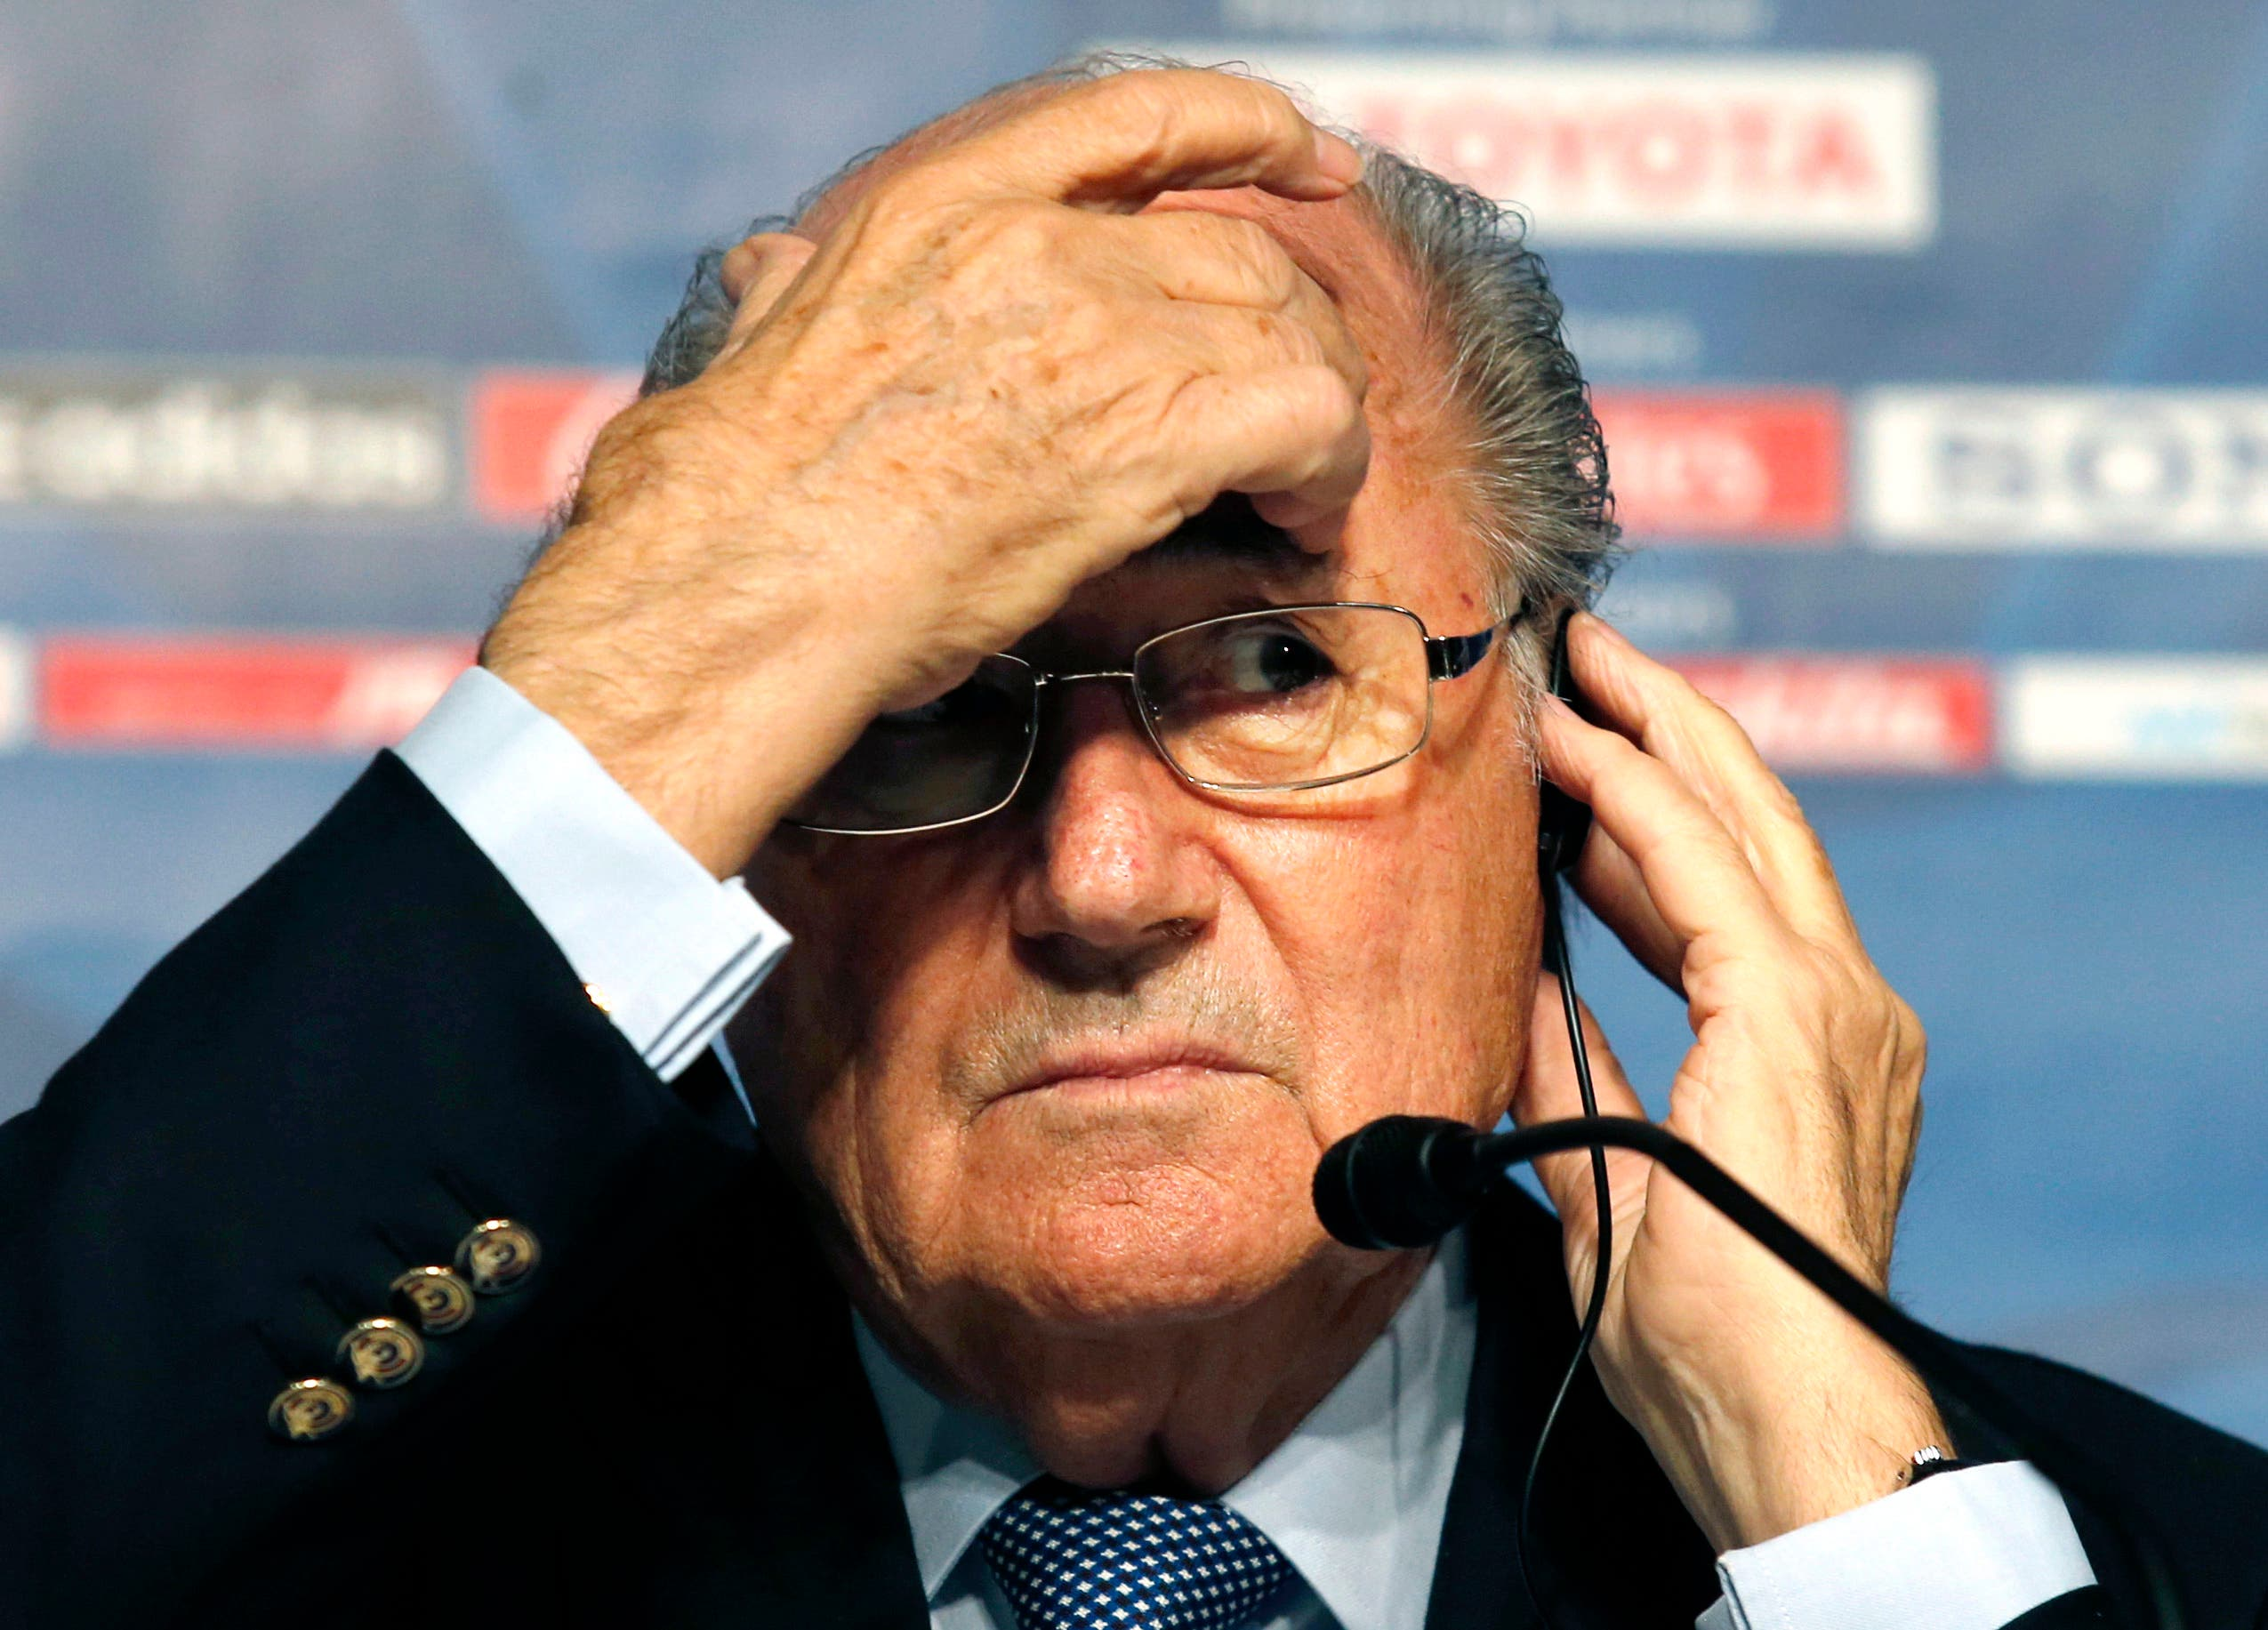 Blatter gestures during during a press conference. (File photo AP)